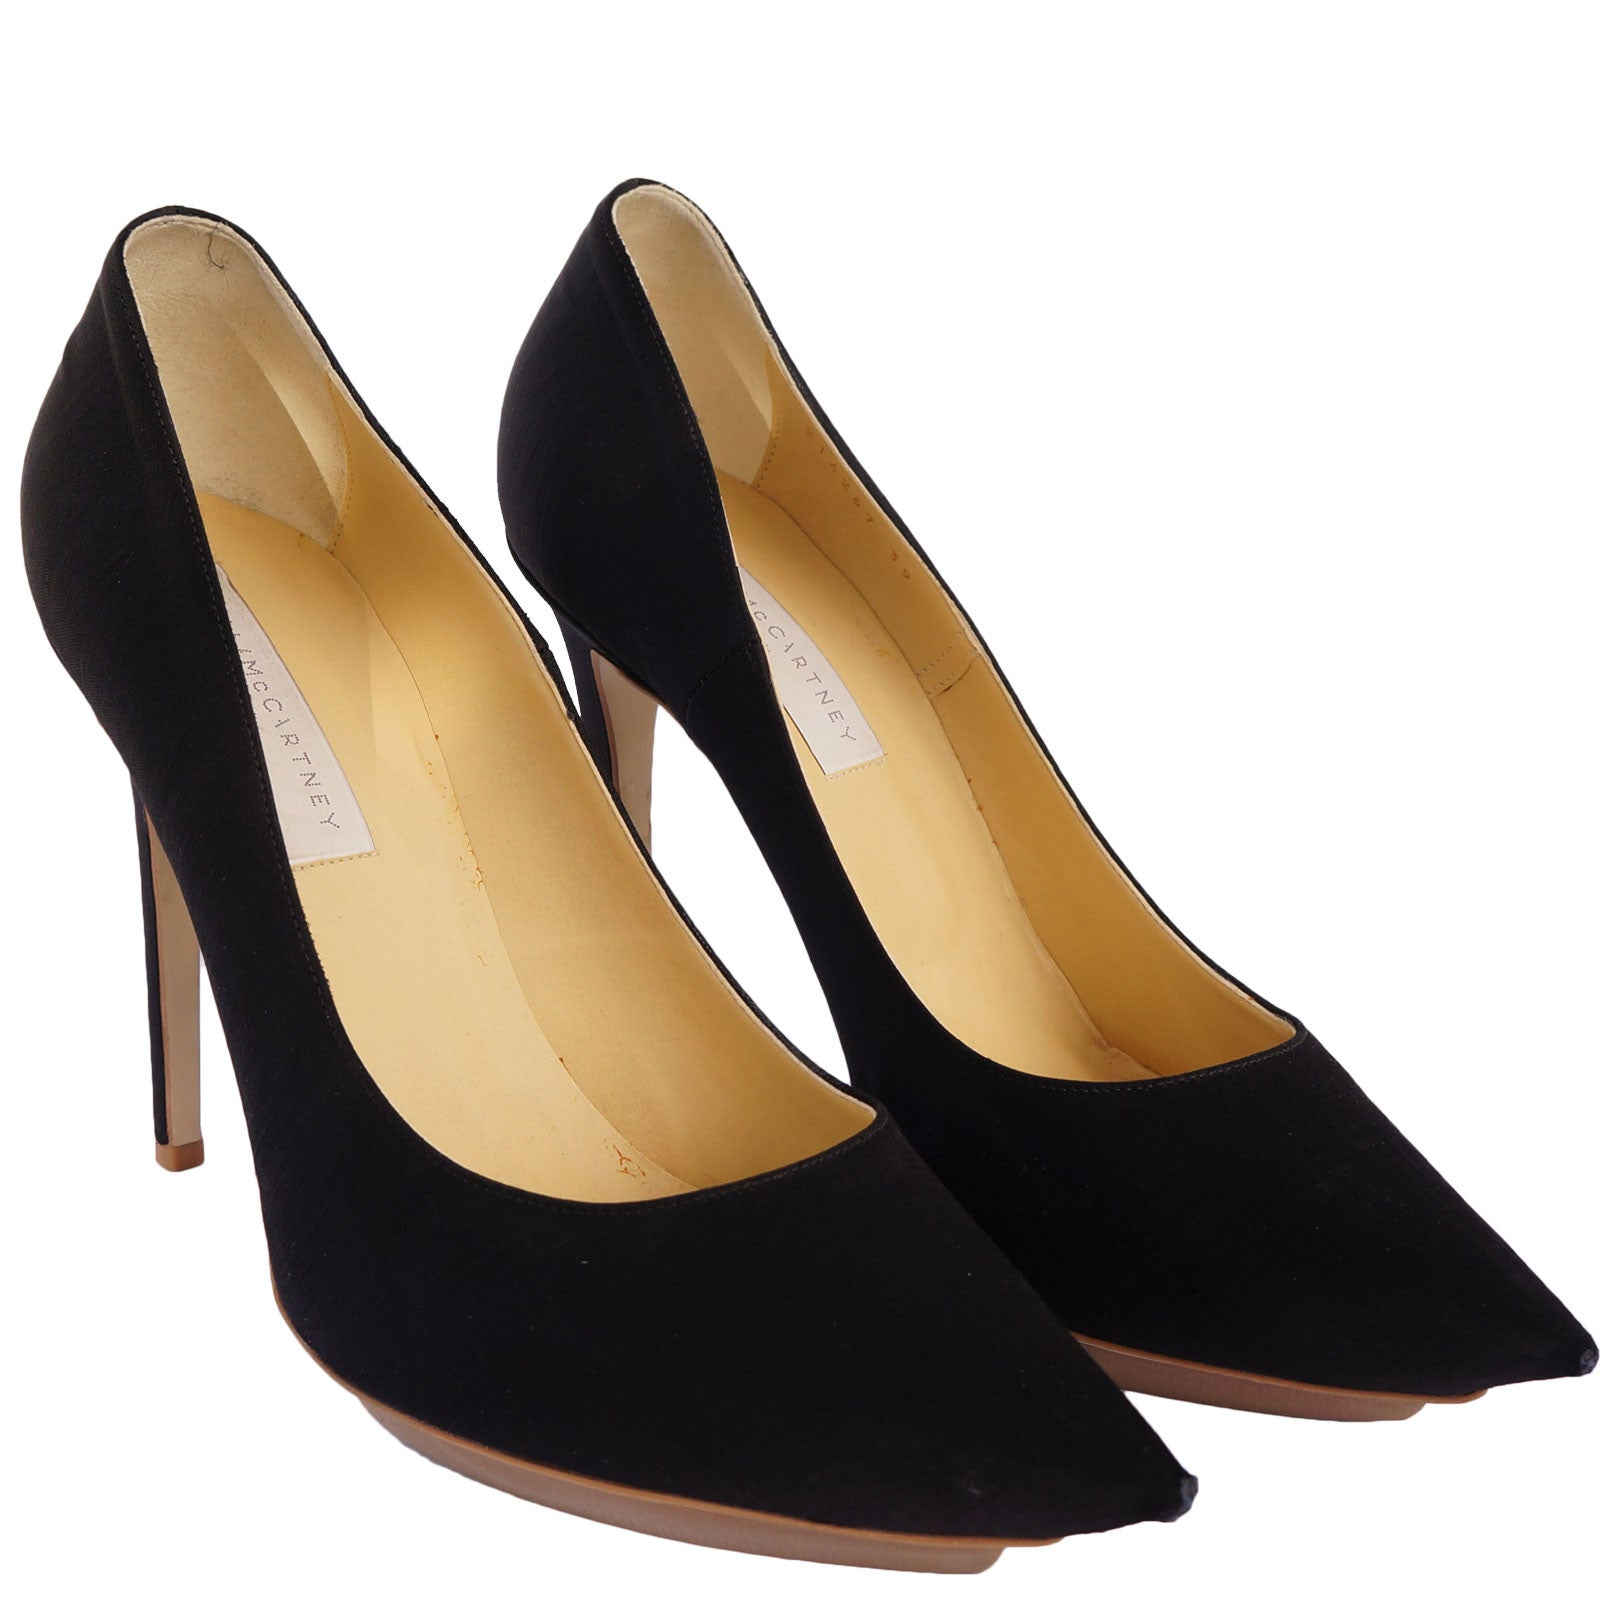 shop for sale online Stella McCartney Satin Pointed-Toe Pumps free shipping tumblr extremely online outlet locations cheap price comfortable cheap price Kqlm2